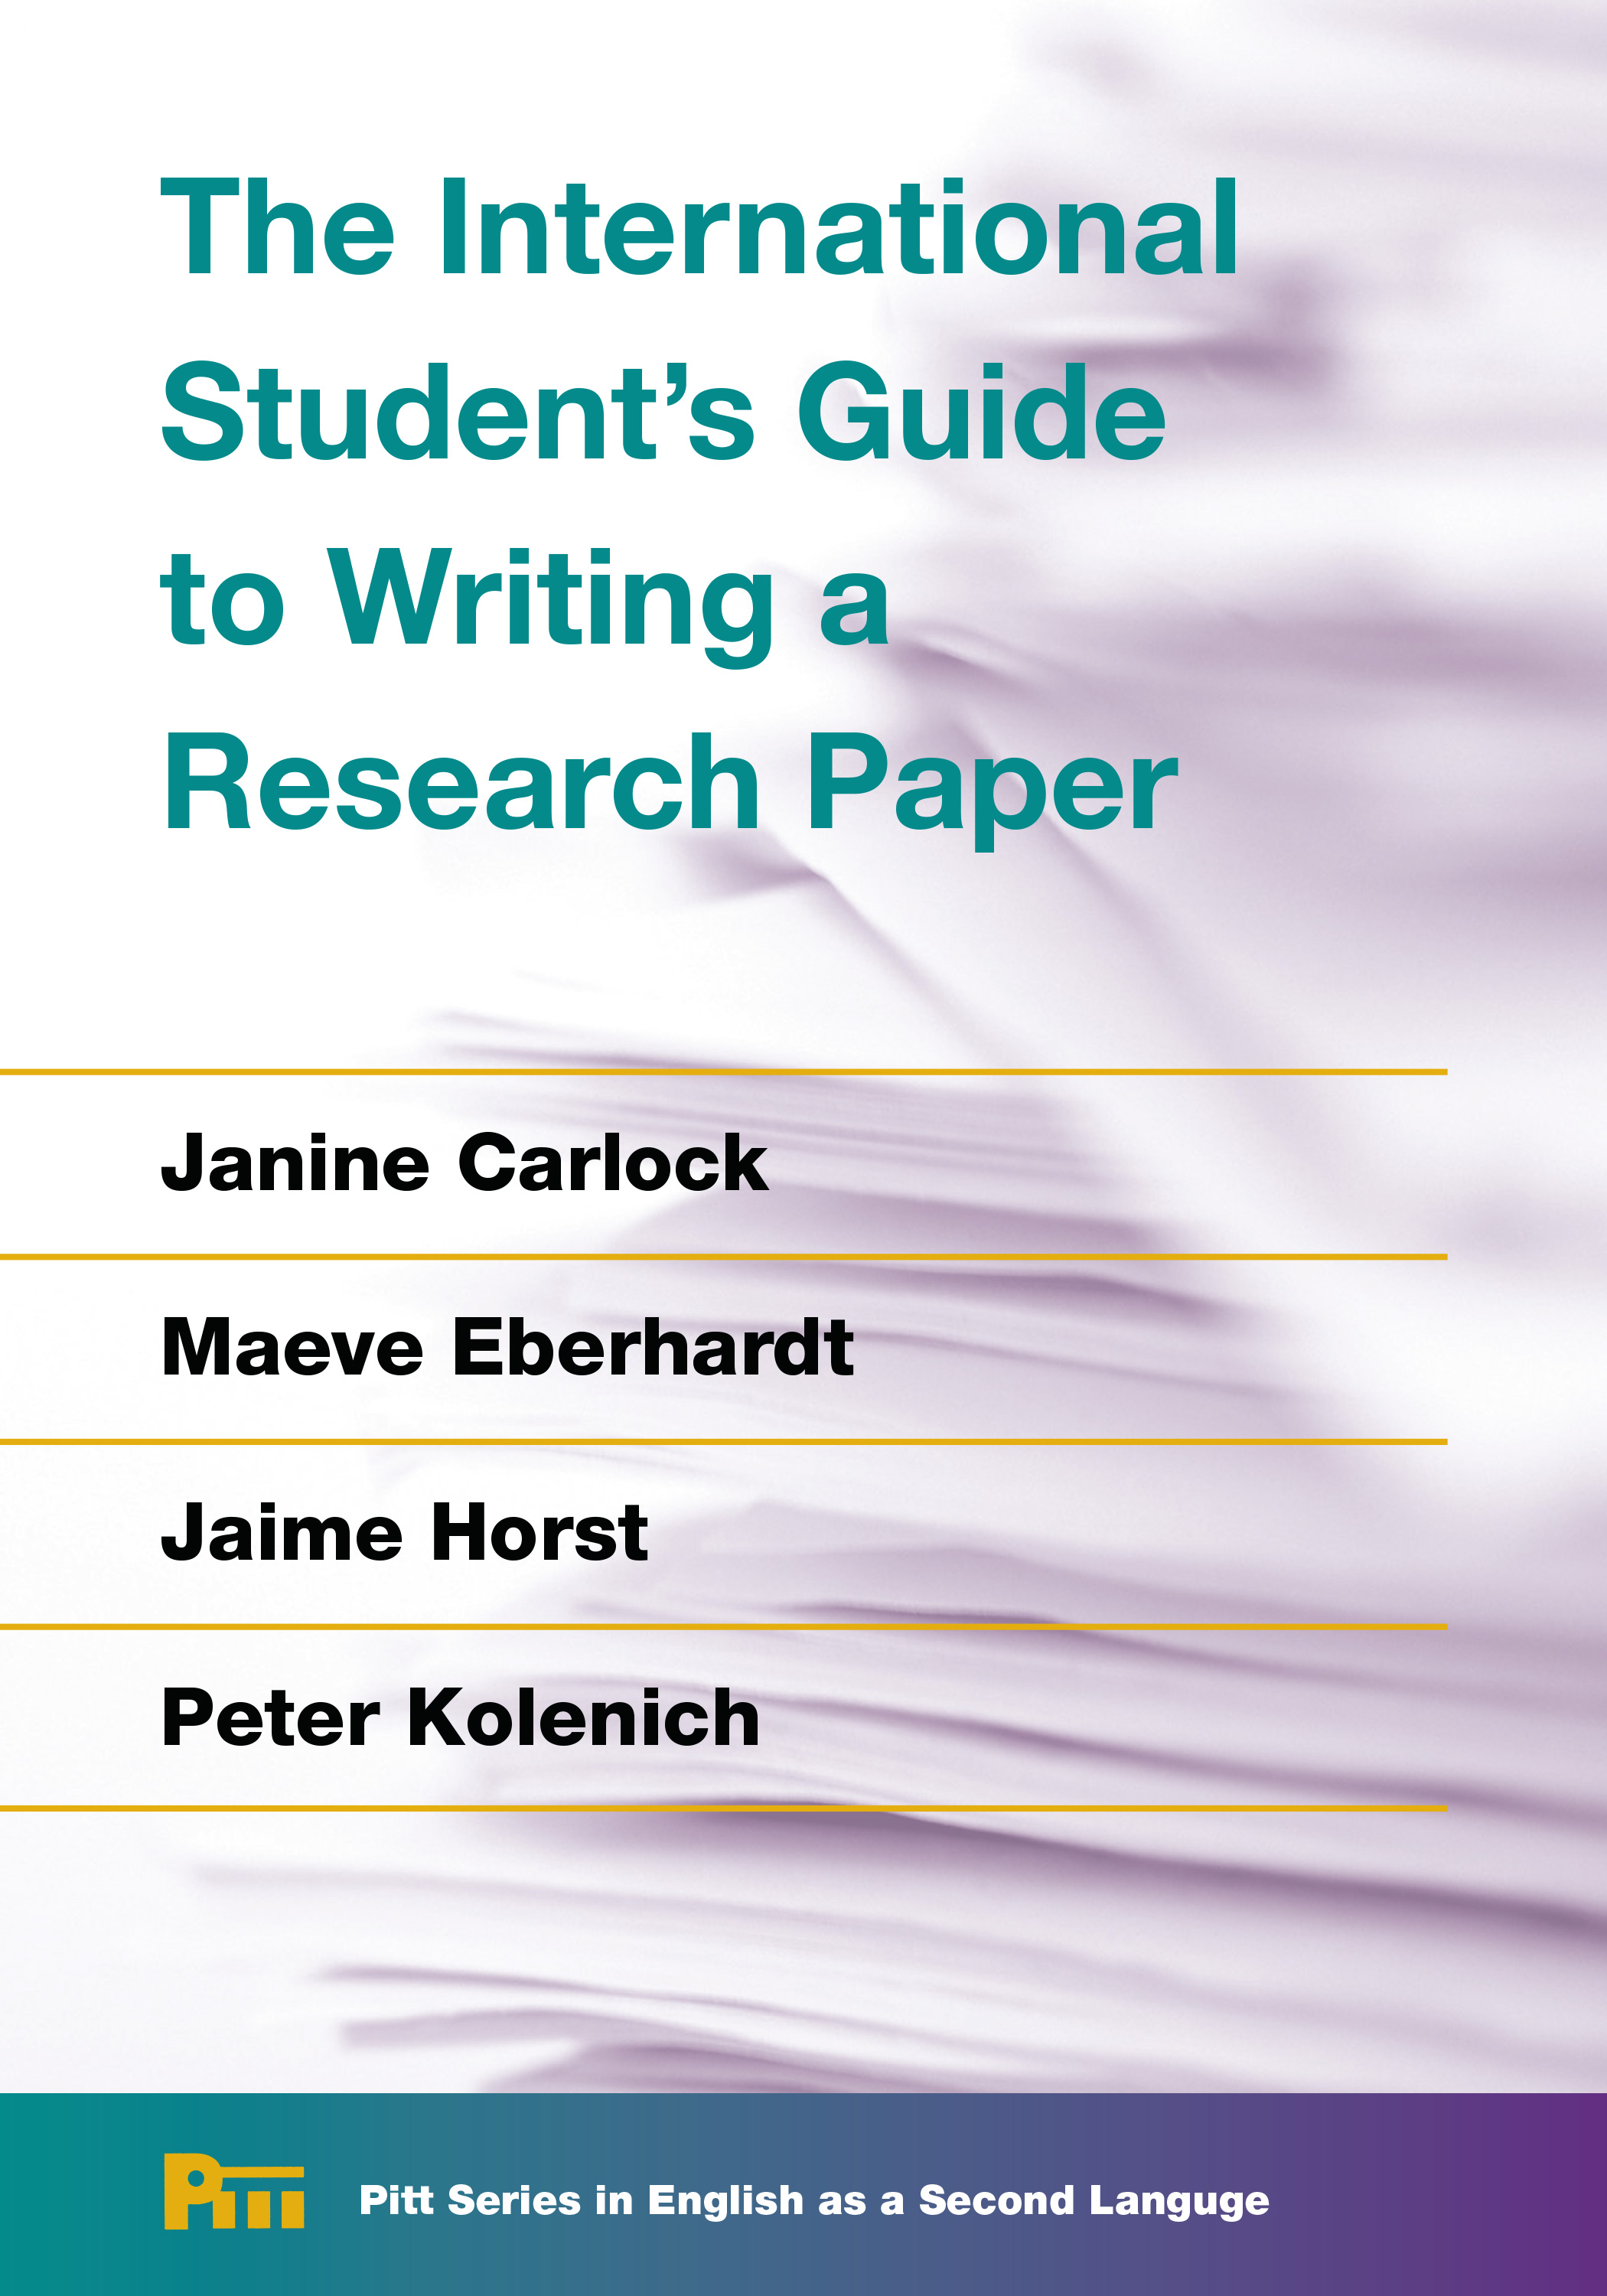 013 Writing The Research Paper Phenomenal How To Write A Outline Mla Papers Complete Guide 16th Edition Pdf Free Full